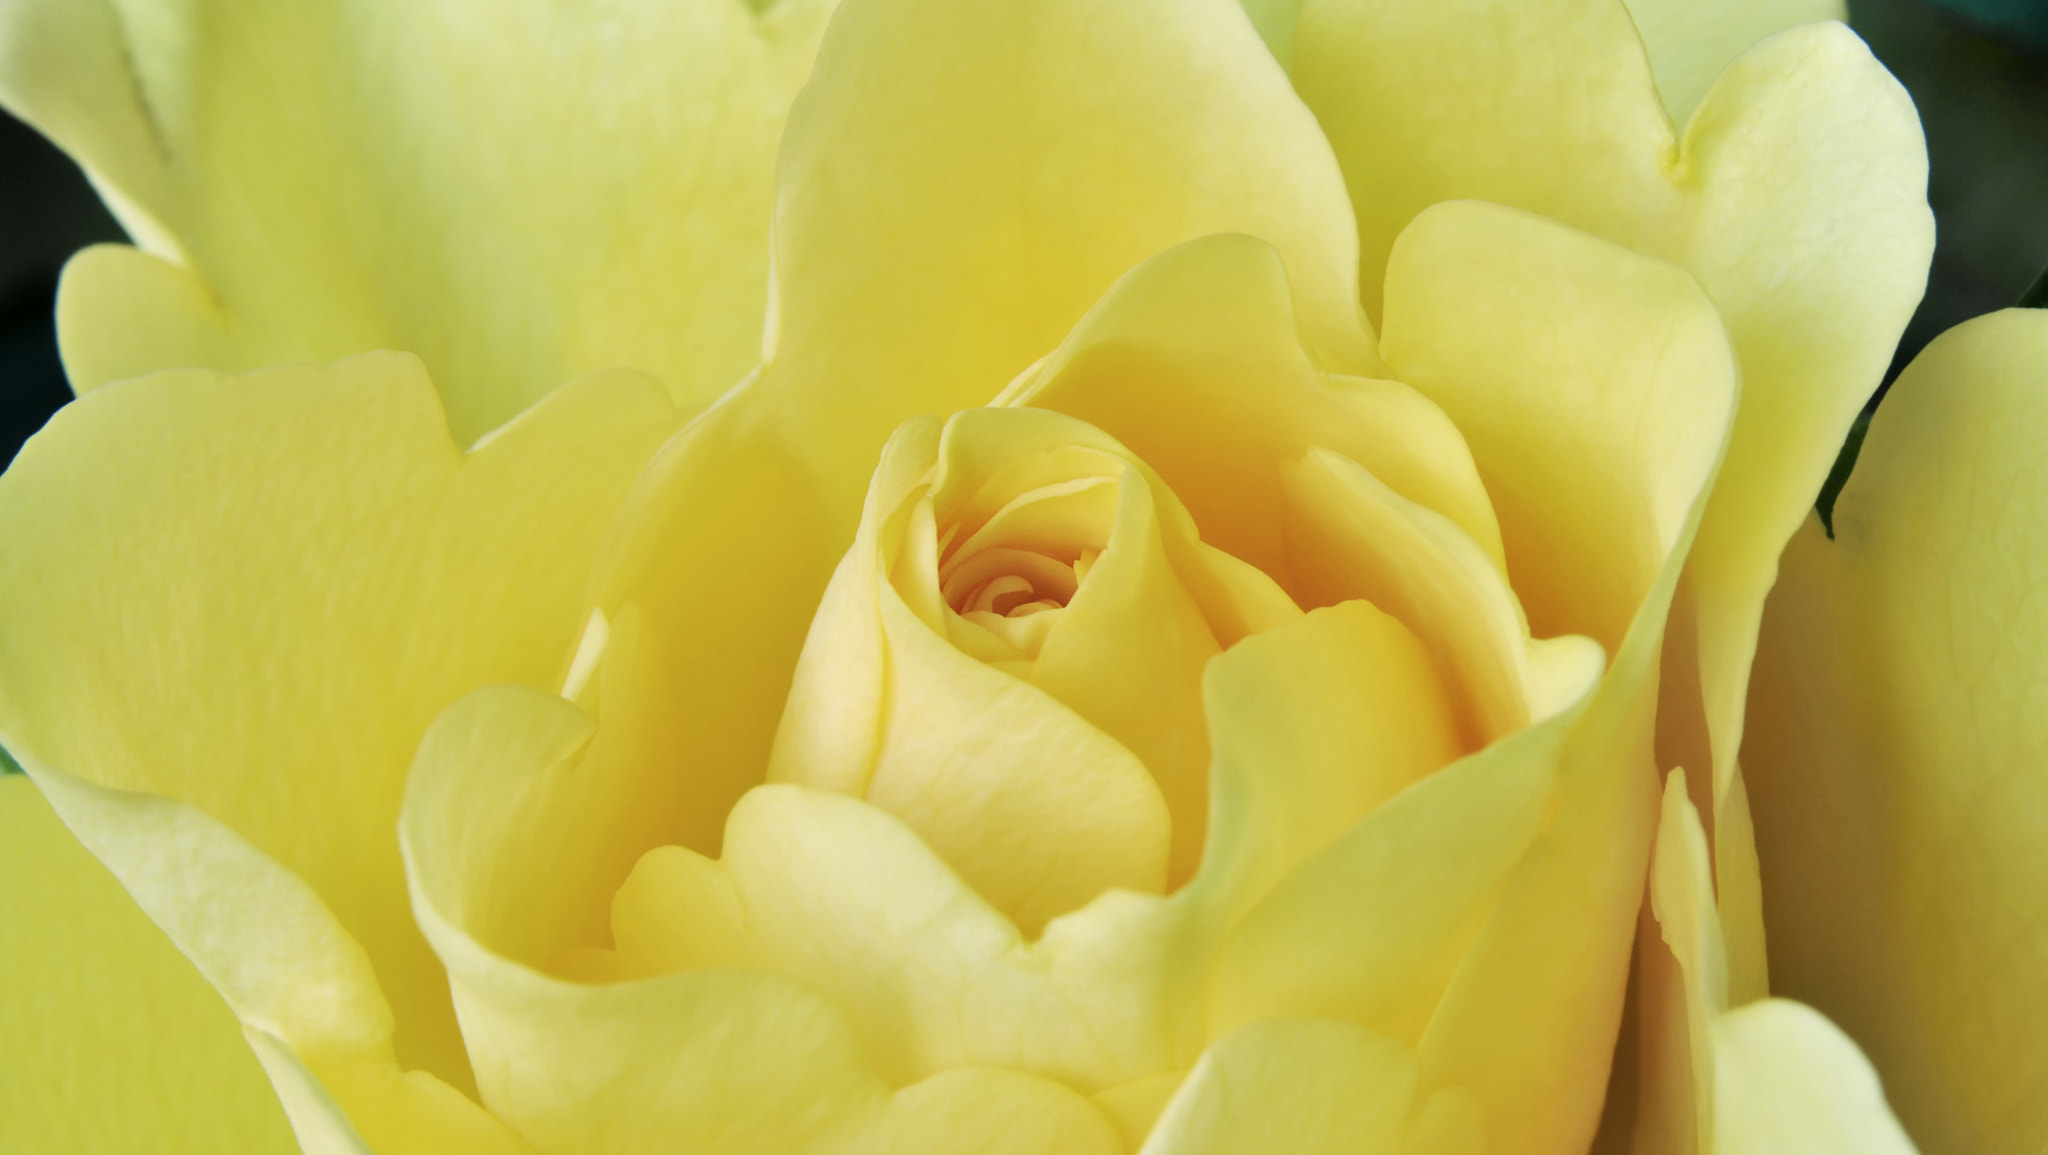 Photograph Yellow Rose by Digital Craft Factory on 500px